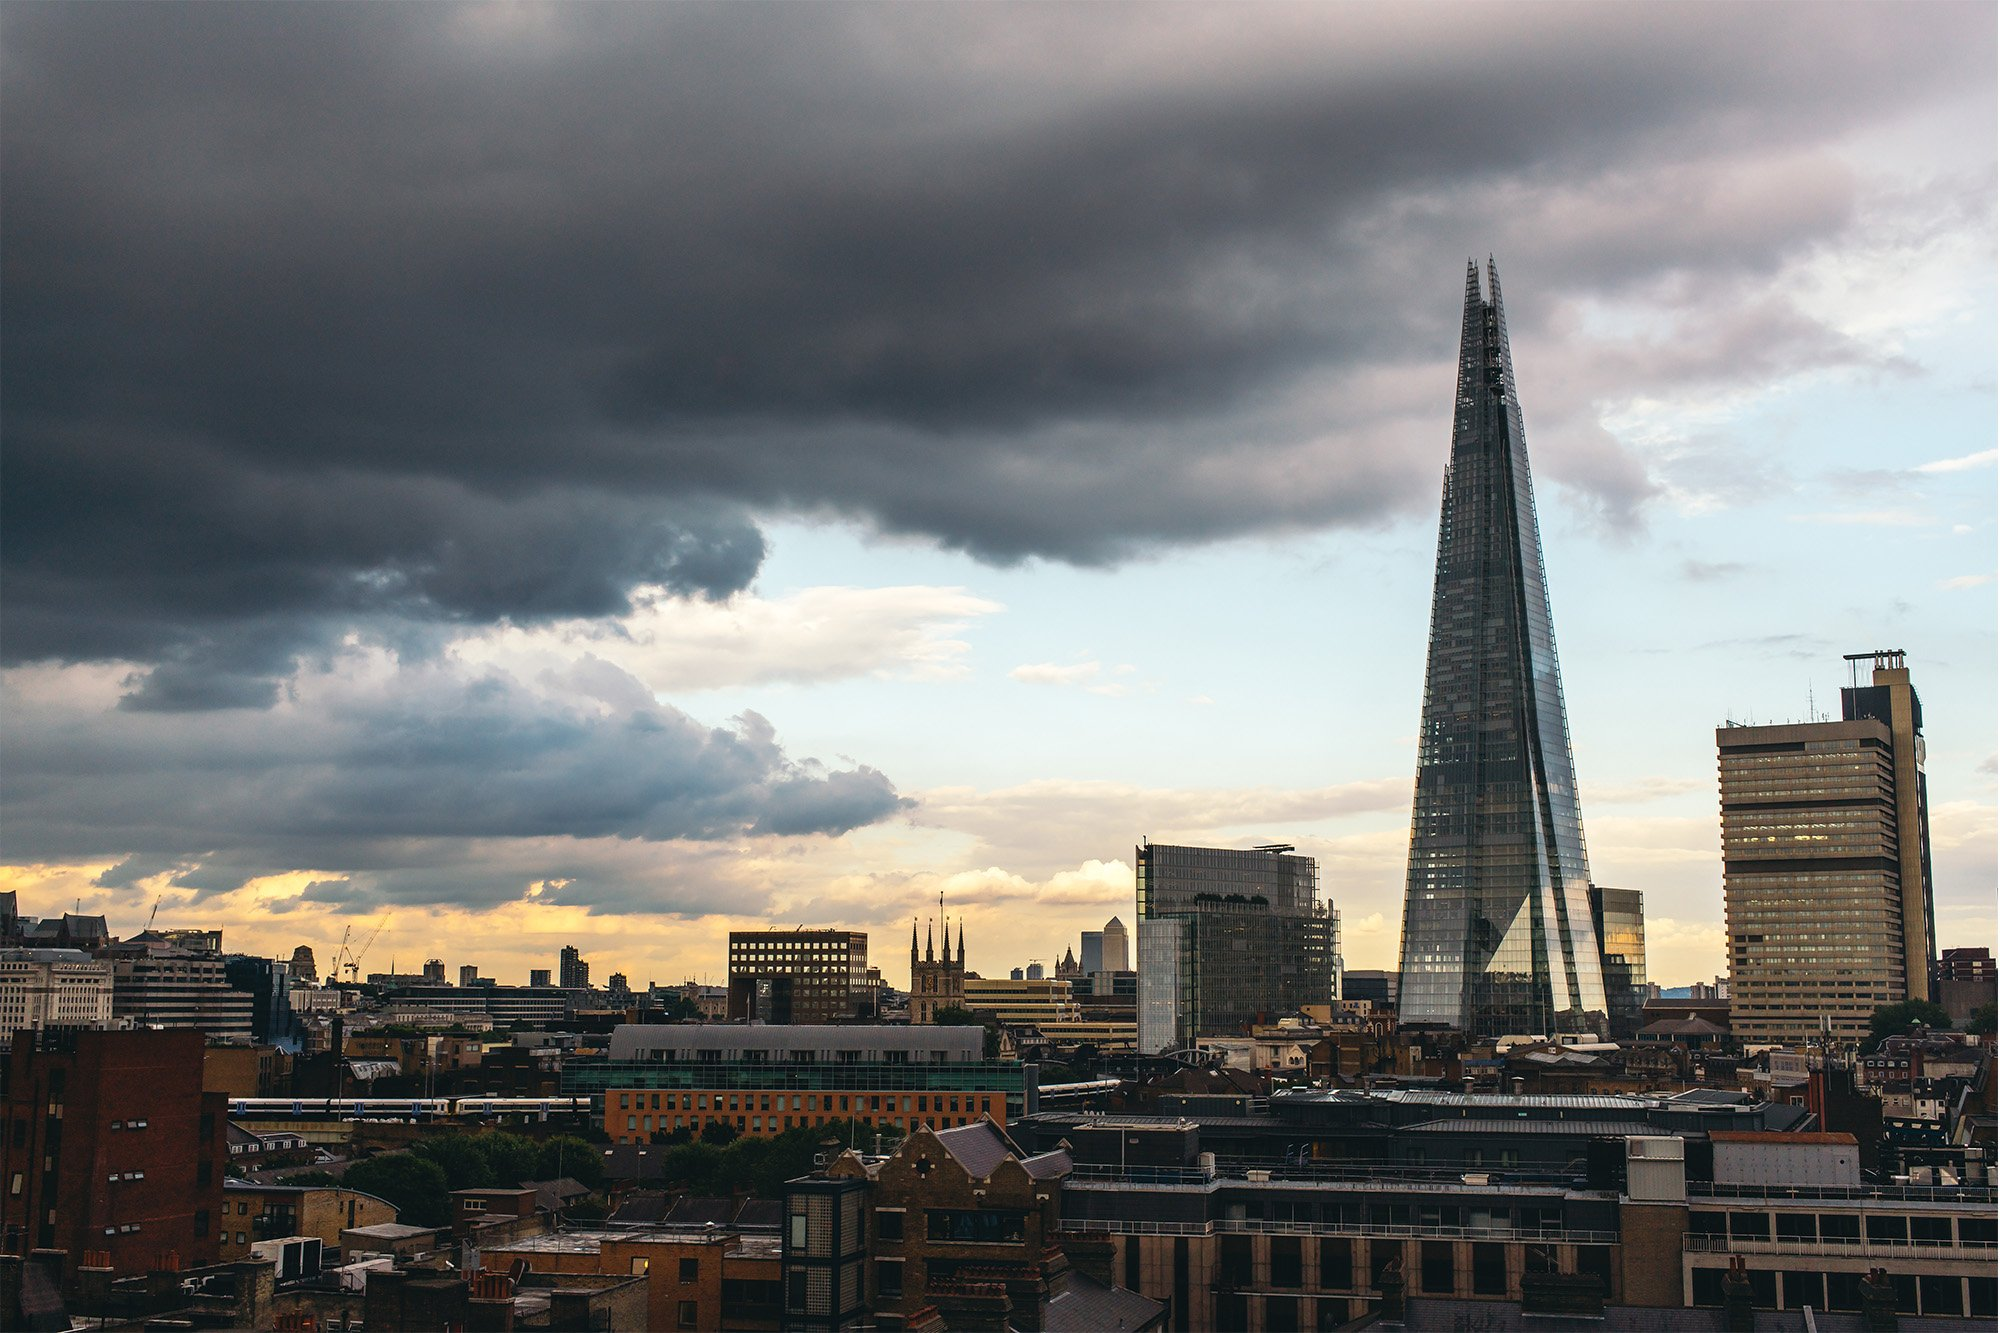 Testing the Sony A7R II – An evening view of The Shard in London with stormy clouds